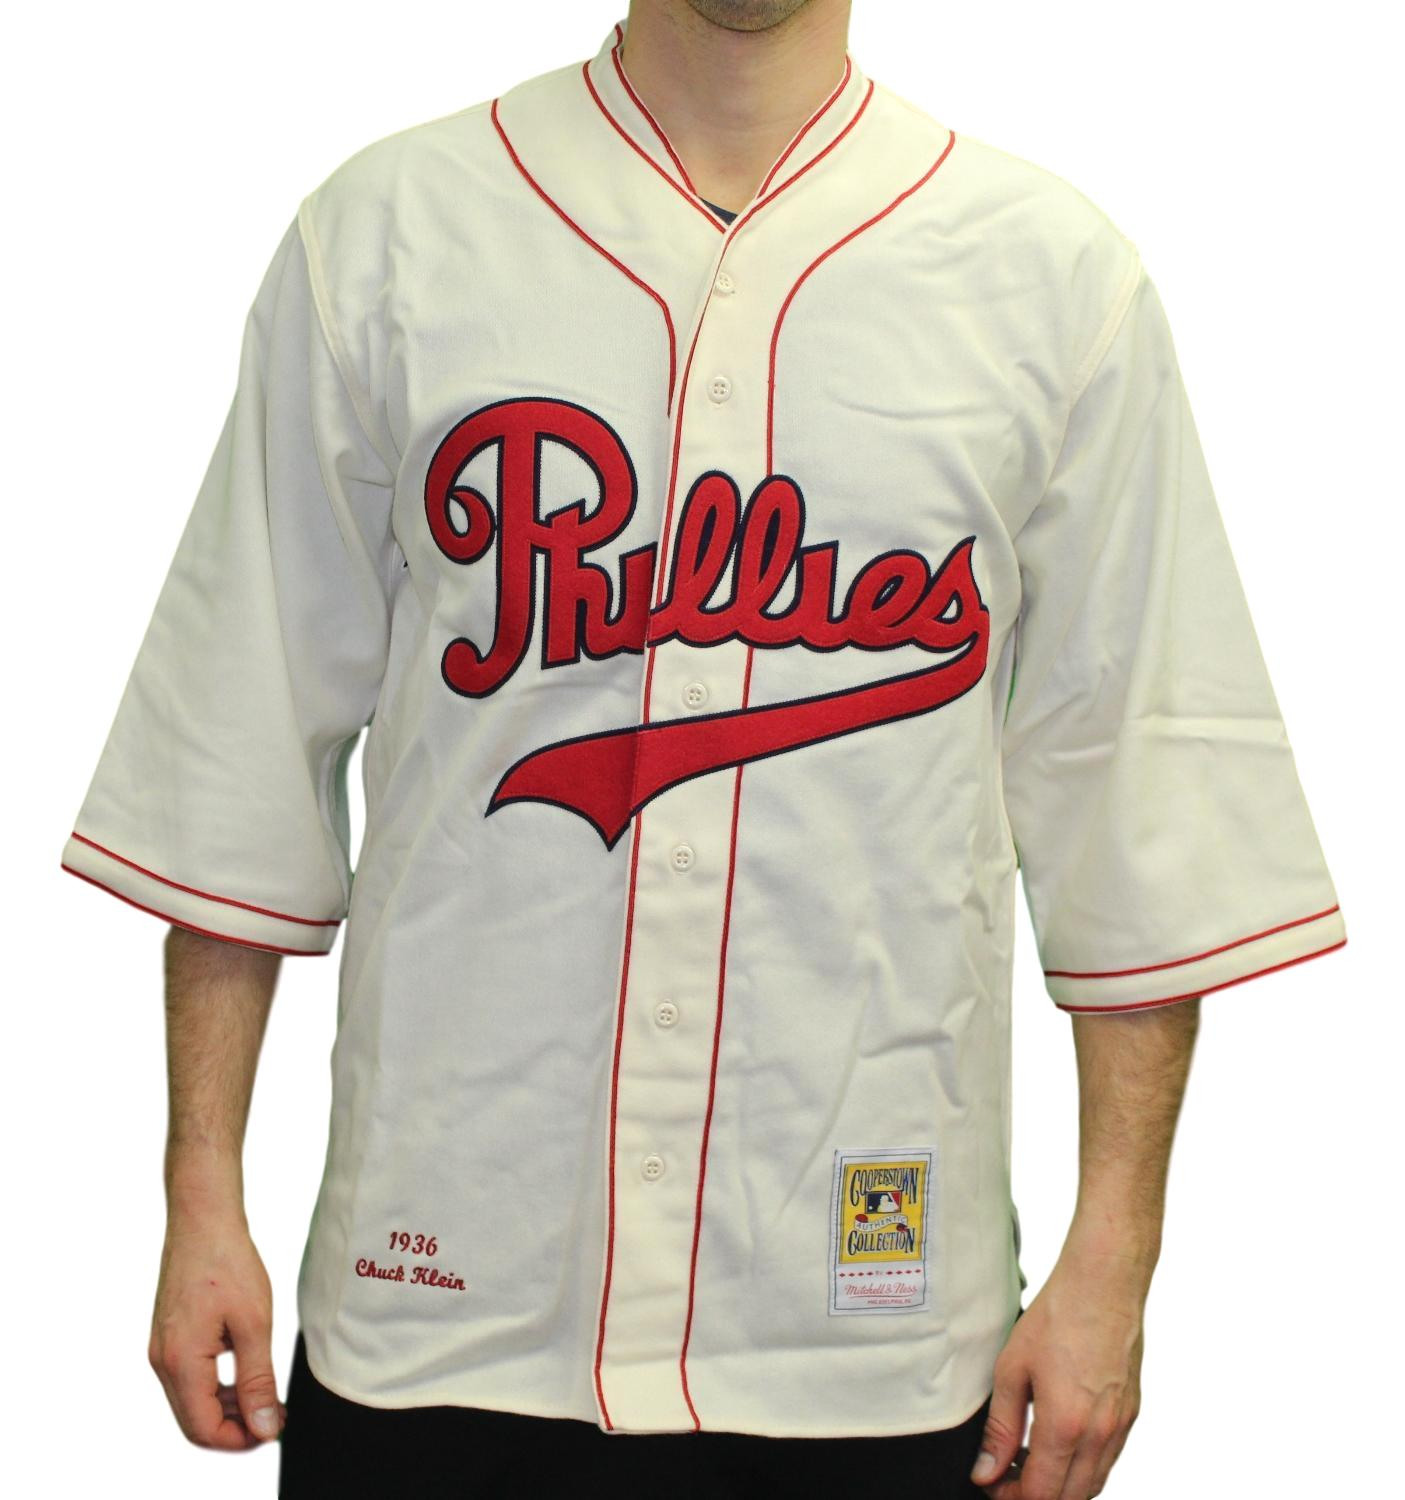 Chuck Klein Philadelphia Phillies Mitchell & Ness Authentic 1936 Jersey